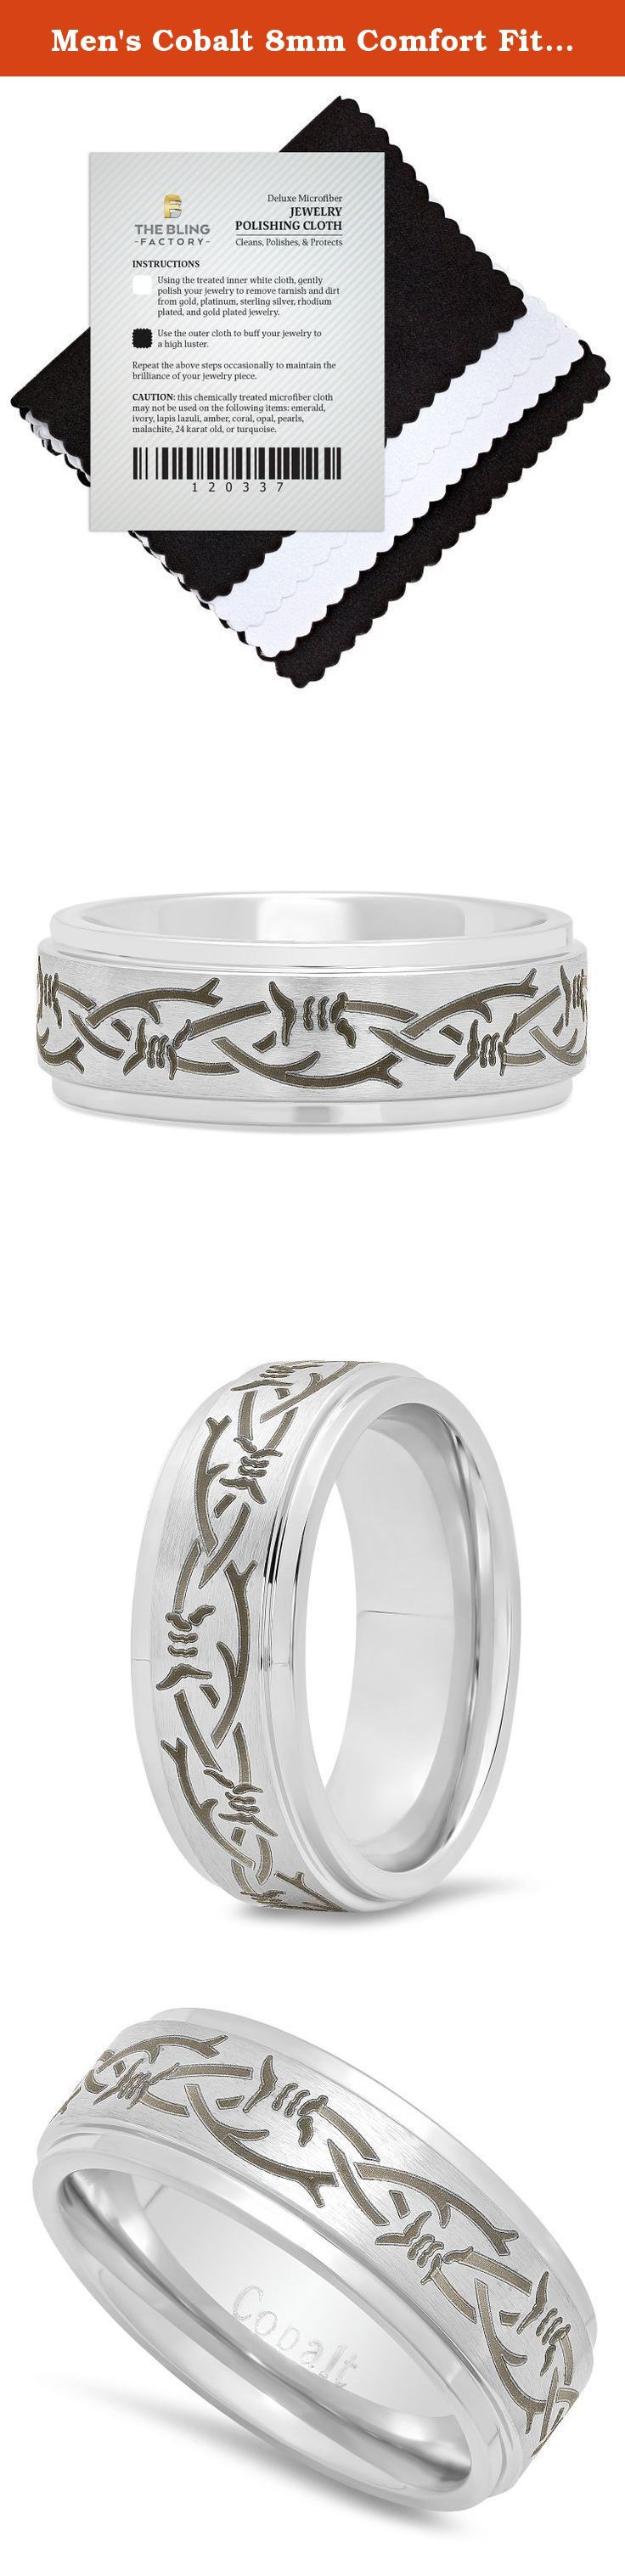 Men's Cobalt 8mm Comfort Fit Ring with Engraved Barbed Wire Design, Size 10. This men's comfort fit band is composed of durable cobalt metal with a high polished finish. A brushed center displays a laser engraved black barbed wire design framed by polished step edges. This scratch-resistant 8mm ring emits a reflective shine.